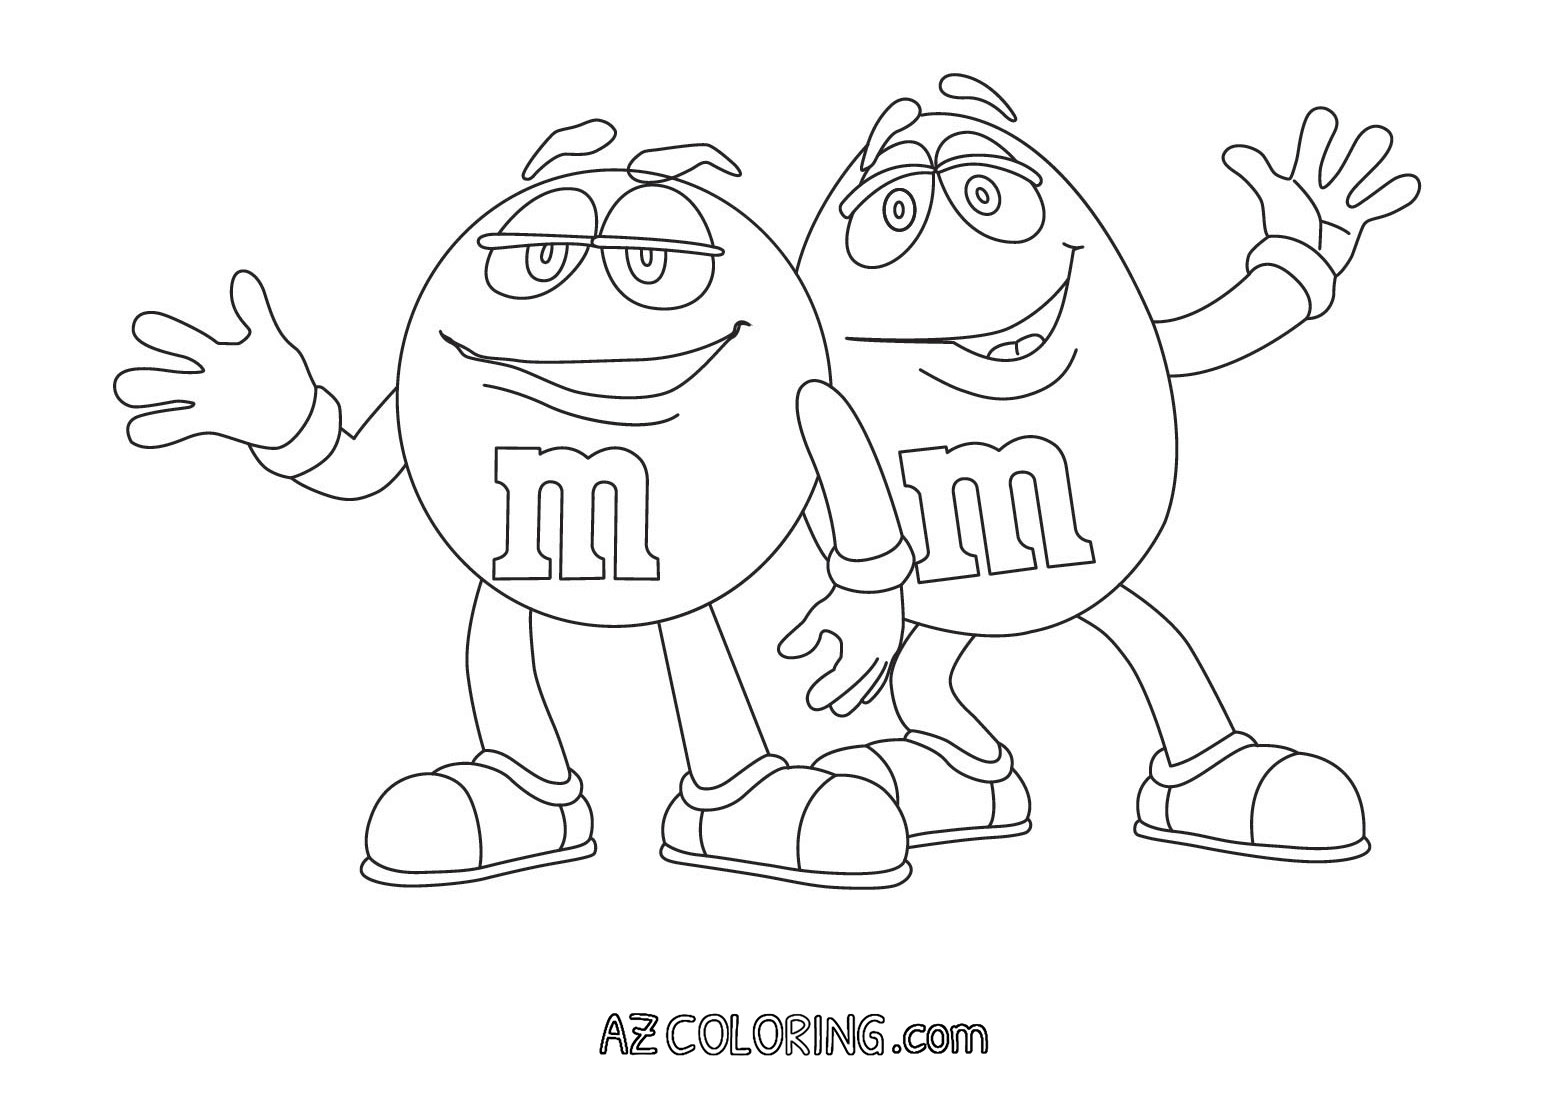 M&m Coloring Pages Simple M&m Coloring Page  Coloring Home